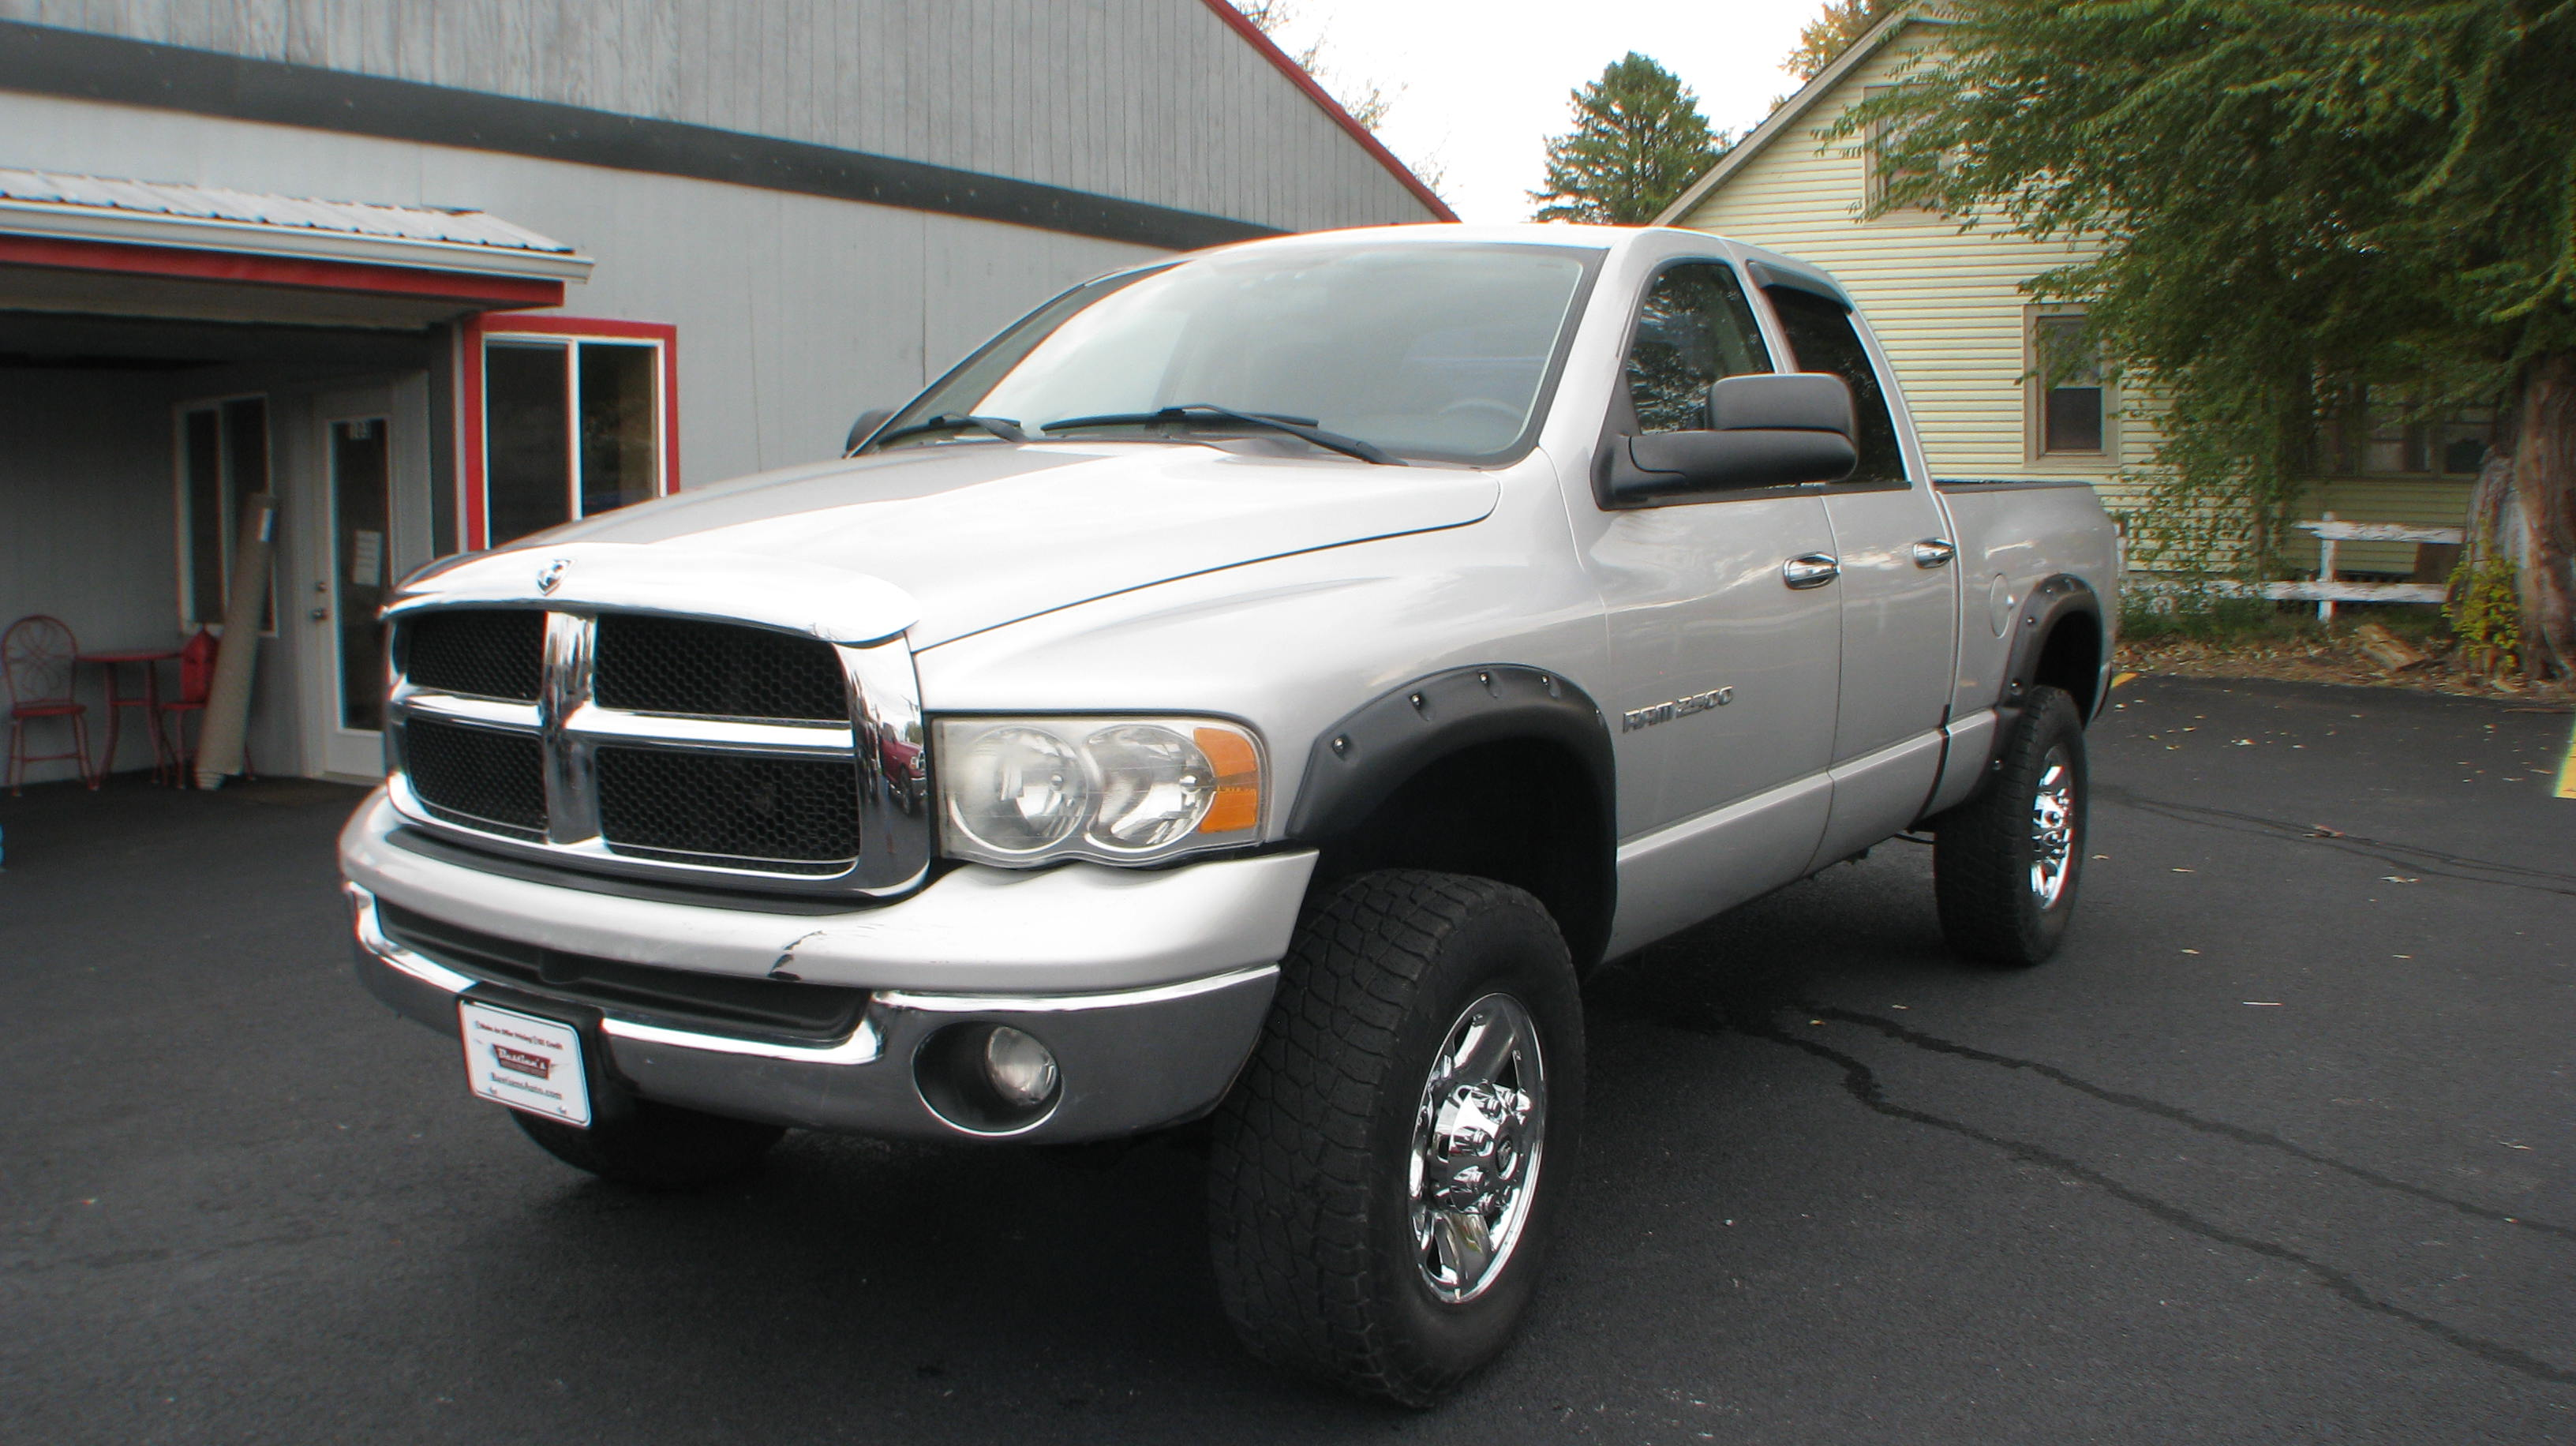 Pre-Owned 2003 Dodge Ram 2500 4WD Quad Cab SLT